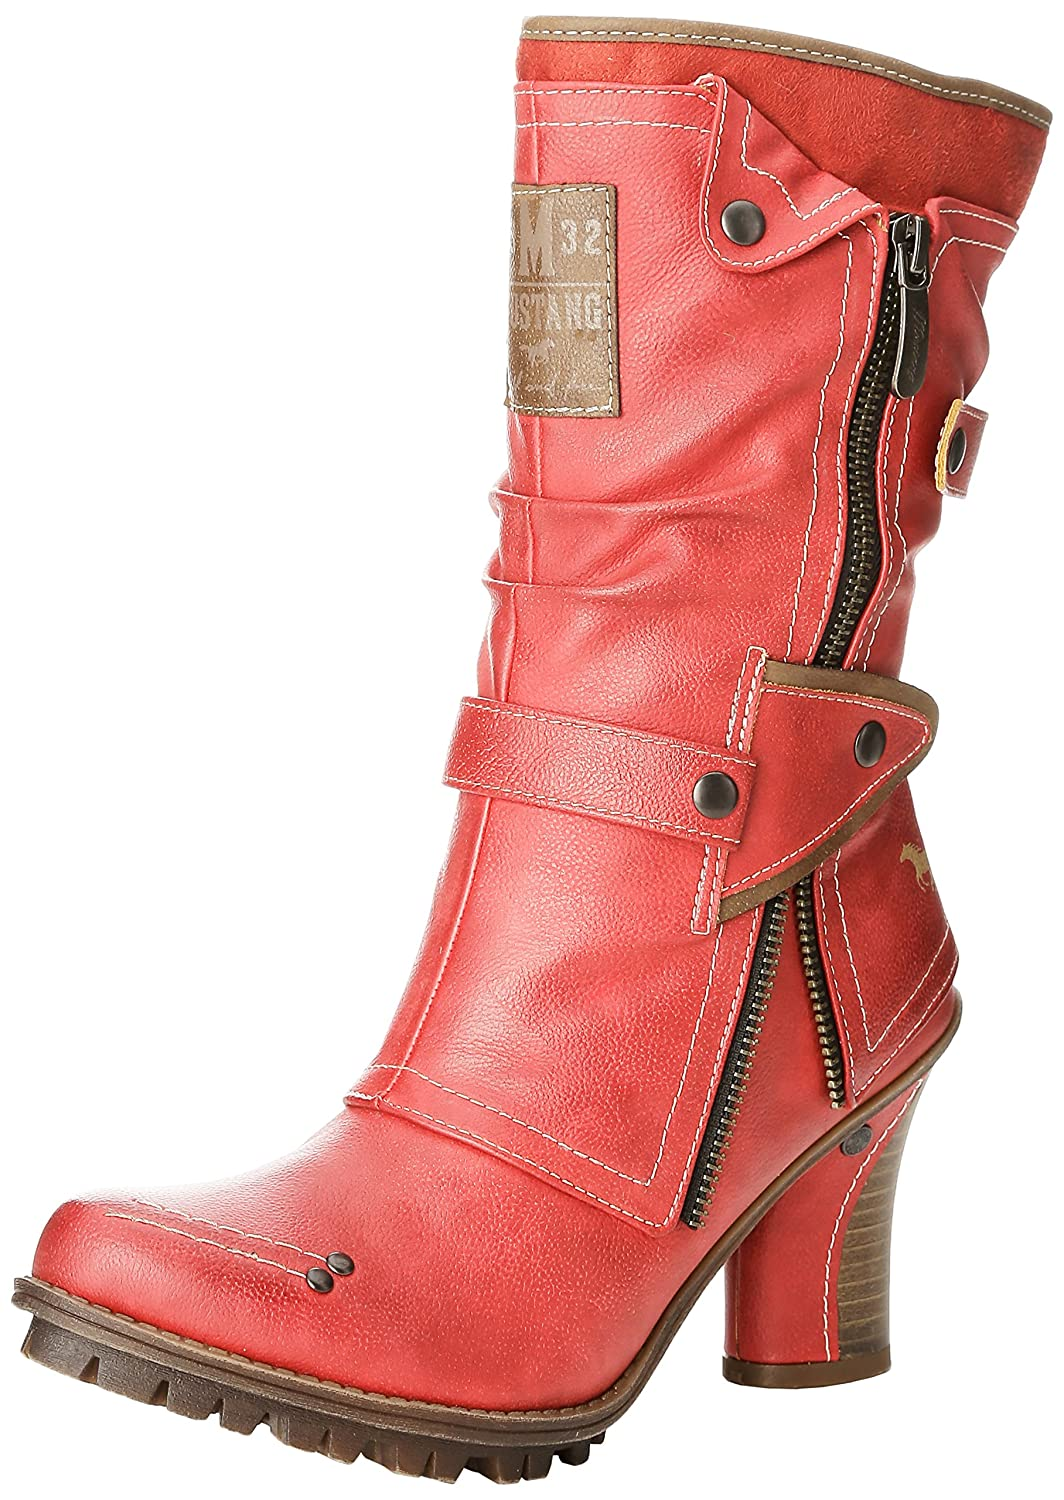 Mustang 10663 1141606, Rot) Boots femme Rouge Mustang (5 Rot) bd15f83 - epictionpvp.space